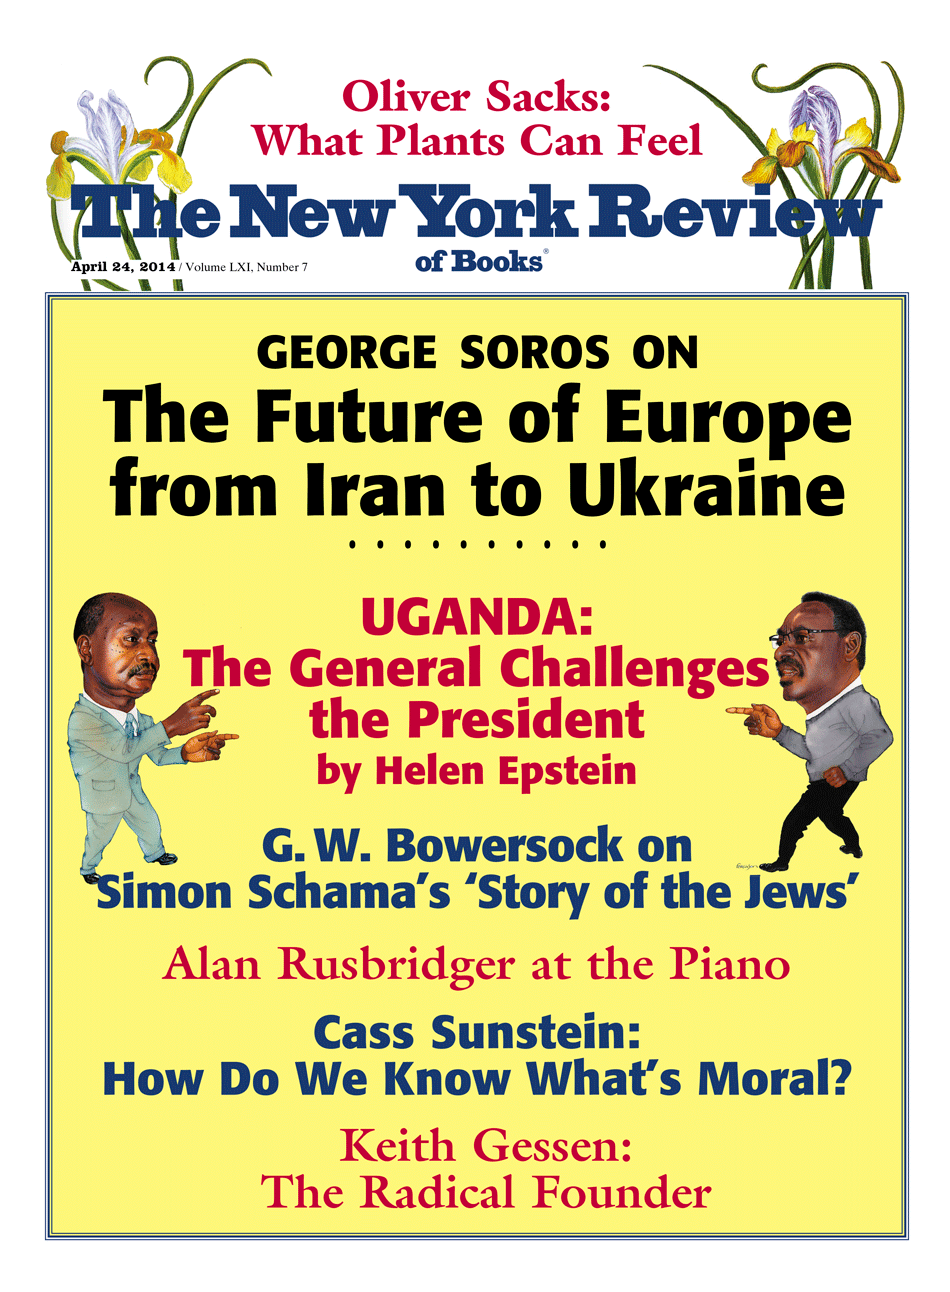 Image of the April 24, 2014 issue cover.